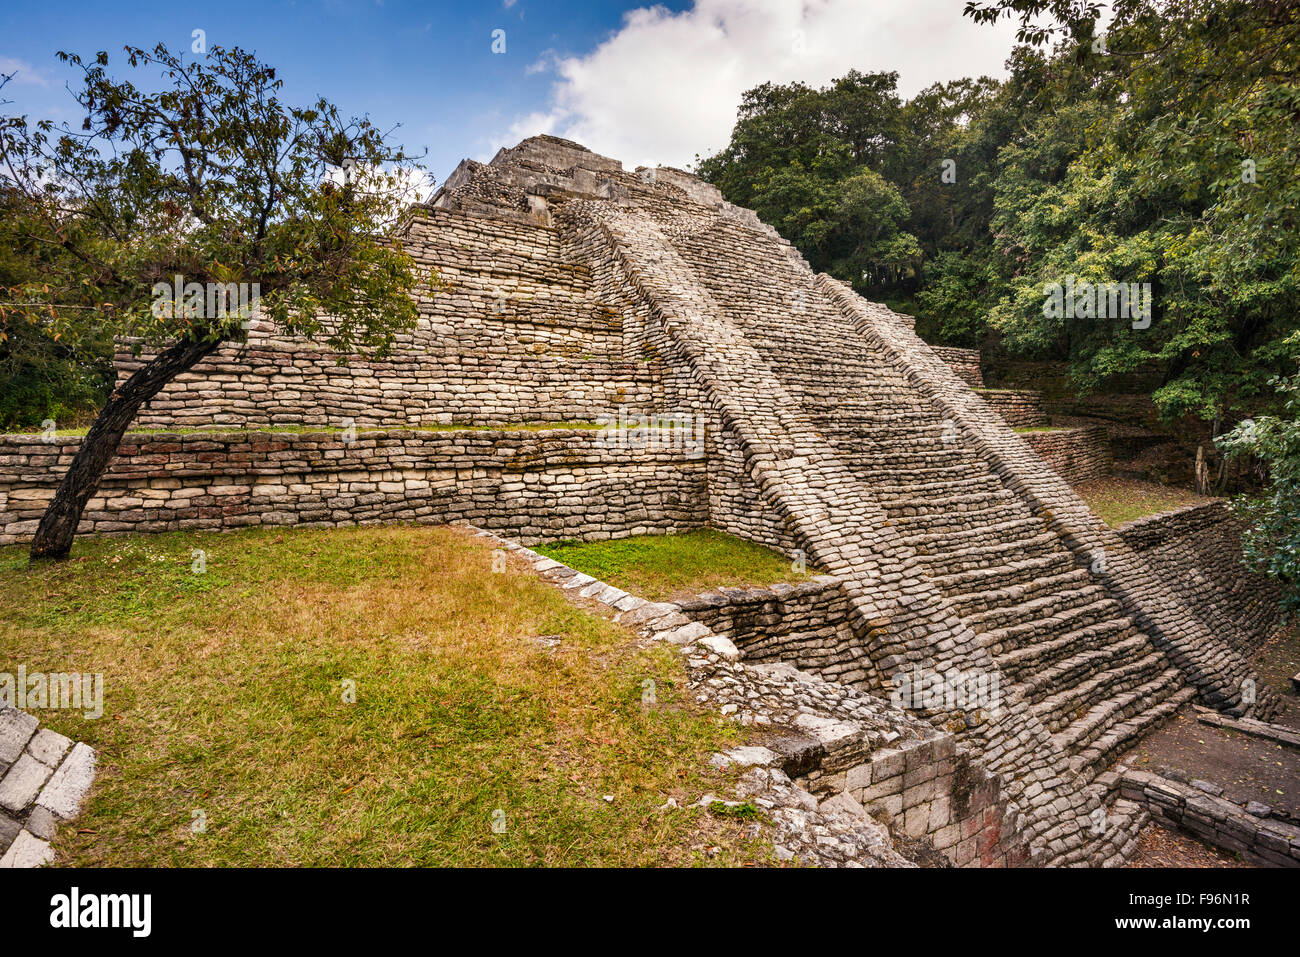 Estructura 7, pyramid, Maya ruins at Tenam Puente archaeological site, near Comitan de Dominguez, Chiapas, Mexico - Stock Image